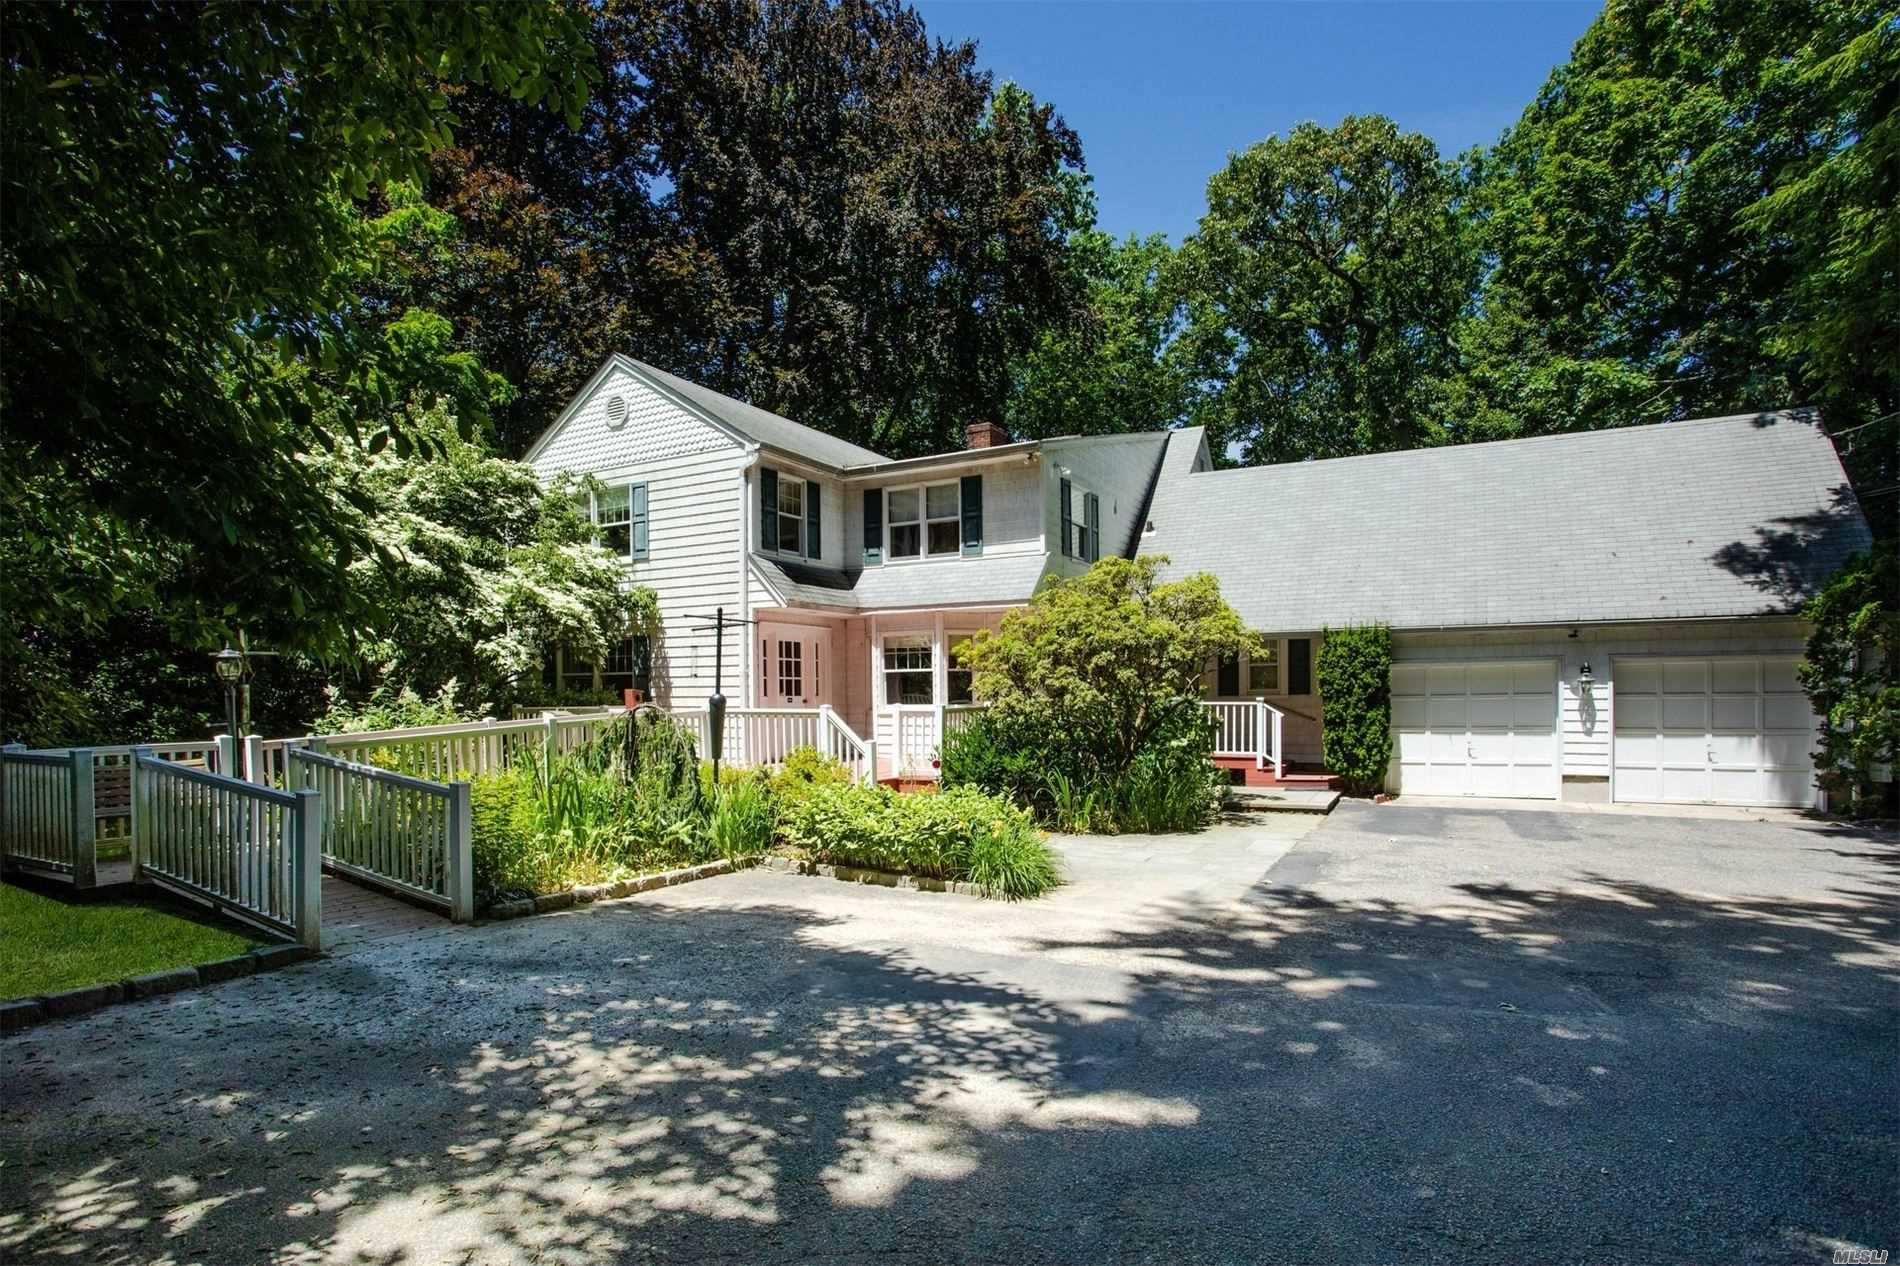 834 Hilltop Road - Oyster Bay, New York